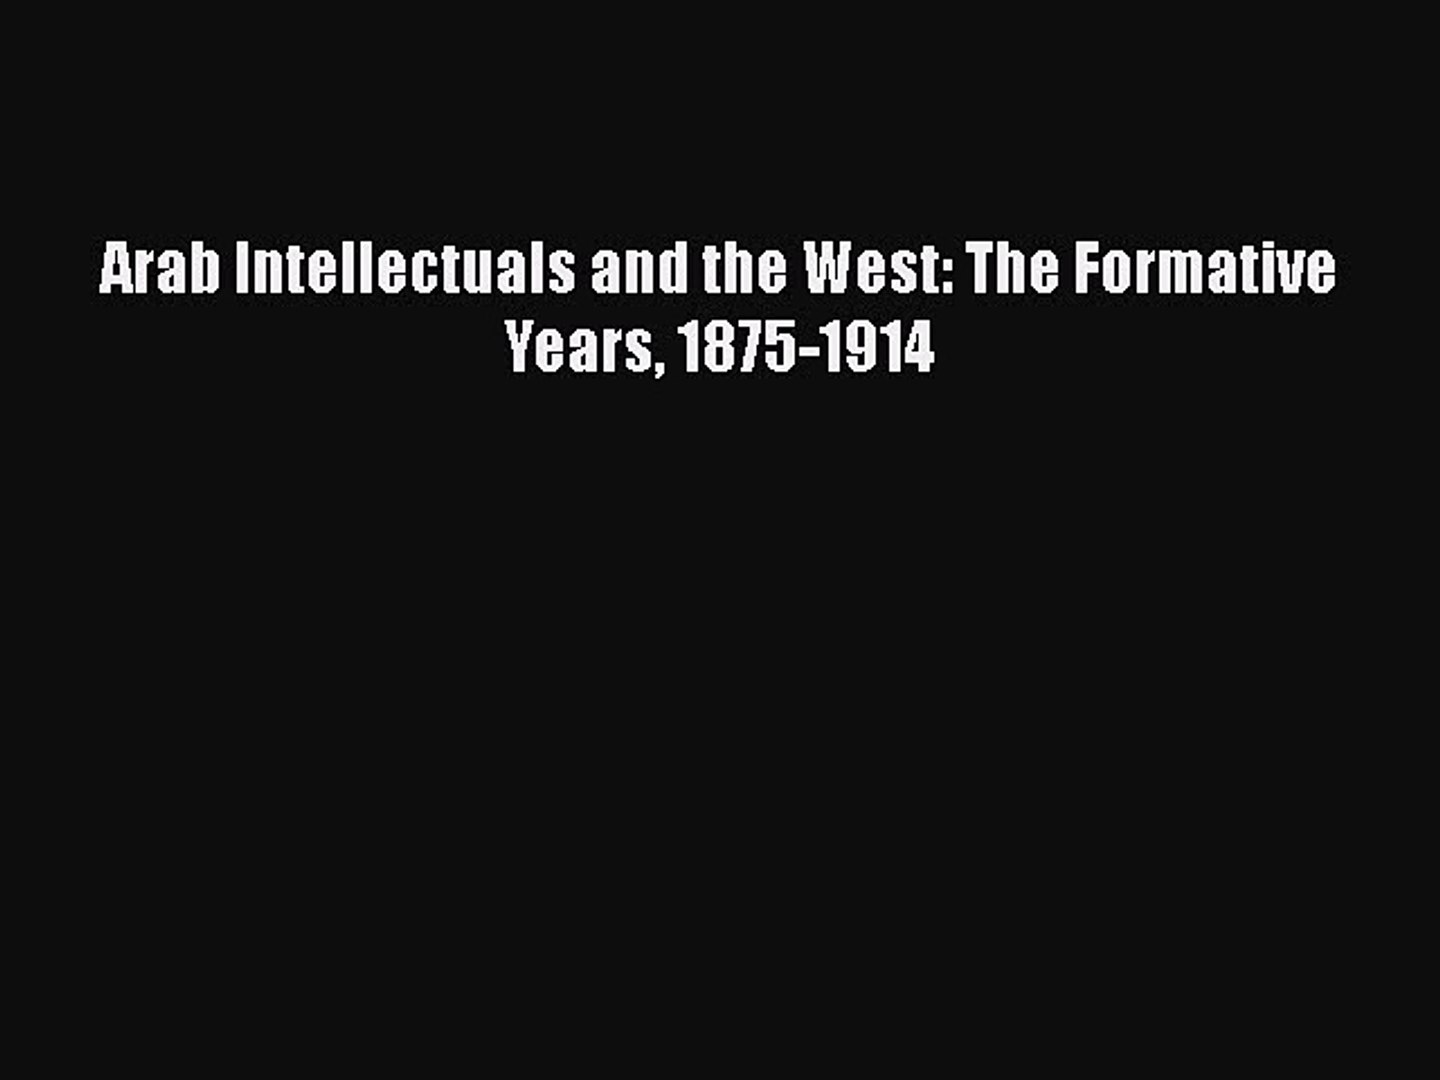 Read Arab Intellectuals and the West: The Formative Years 1875-1914 Ebook Online